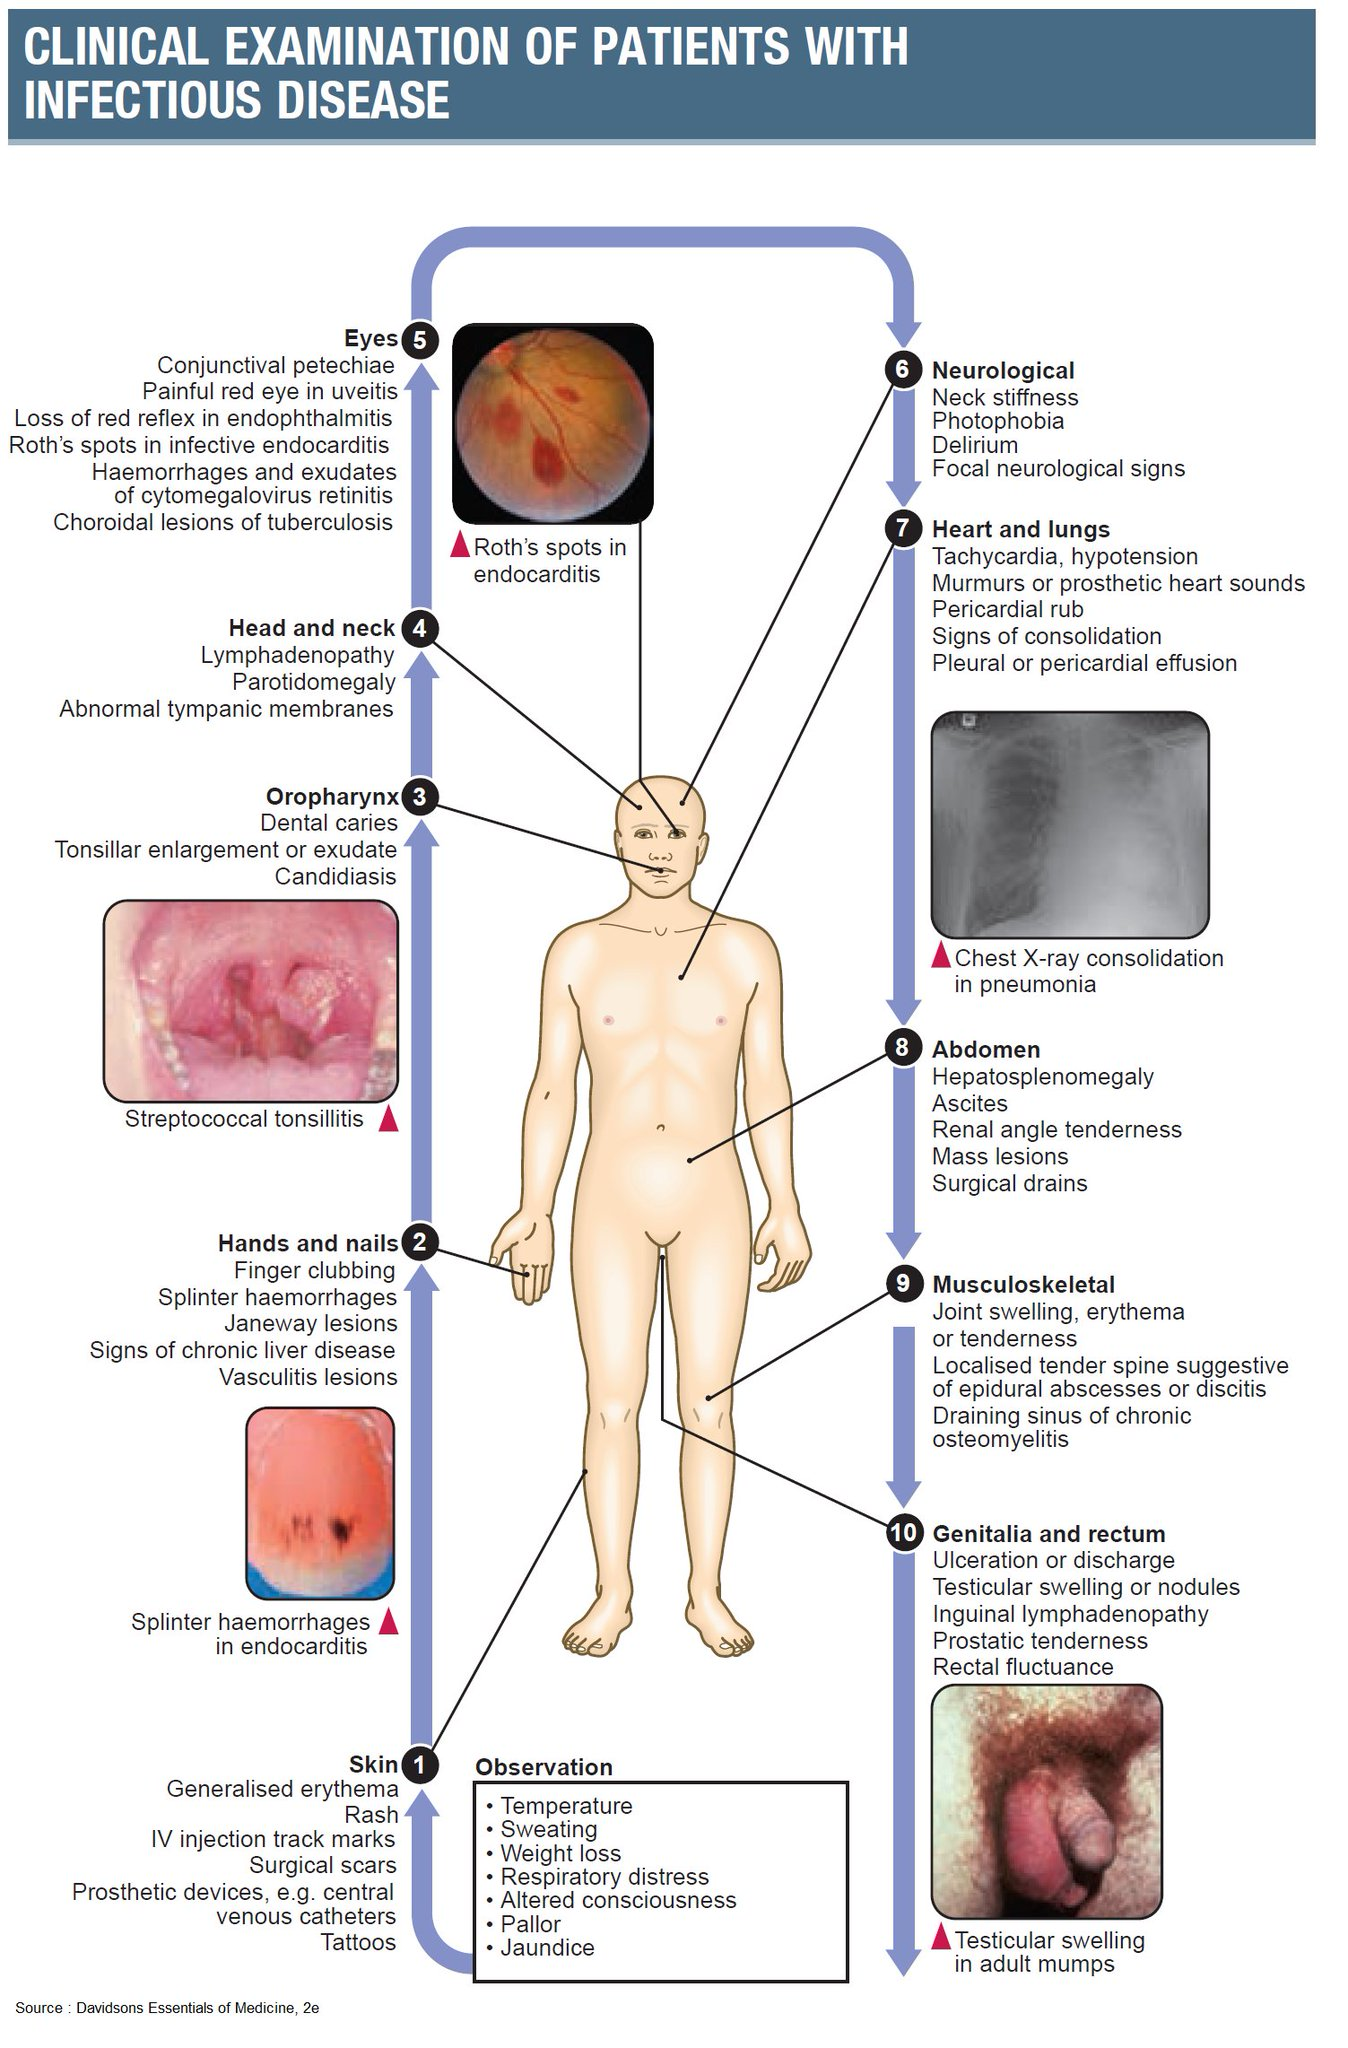 Clinical Examination of Patients With Infectious Disease  #PhysicalExam #Findings #Signs #InfectiousDiseases #Diagnosis